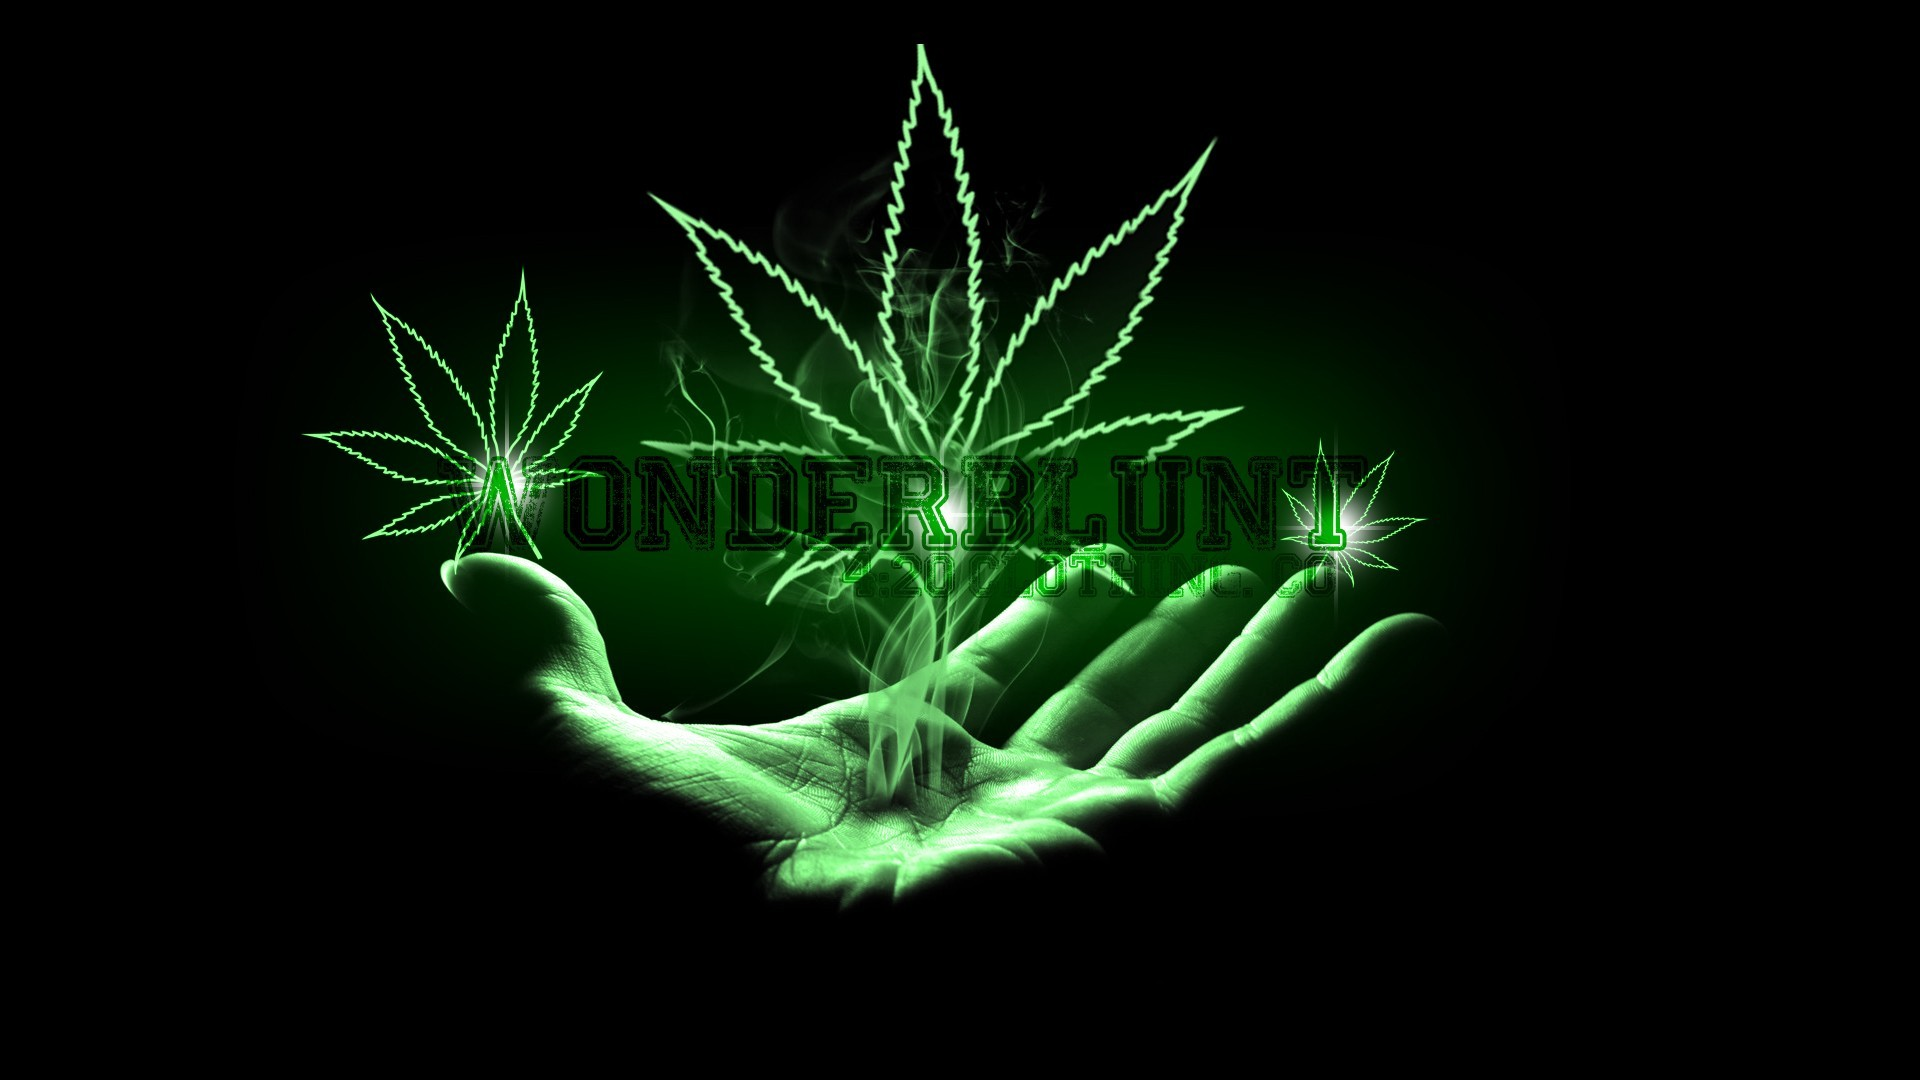 Marijuana weed 420 ganja q wallpaper | 1920x1080 | 171588 ...